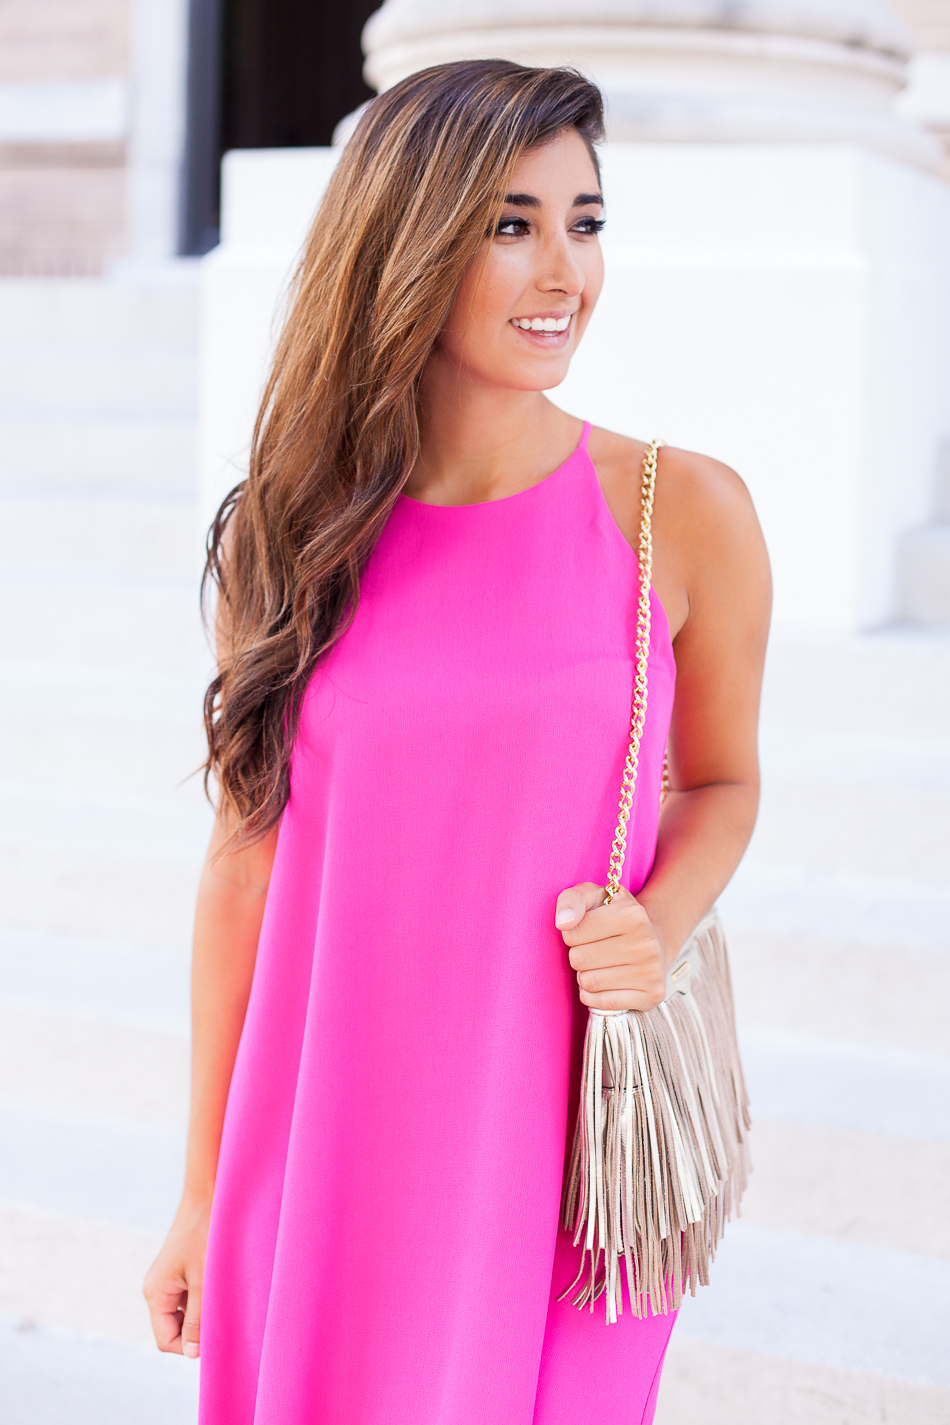 The Little Pink Dress - The Darling Detail